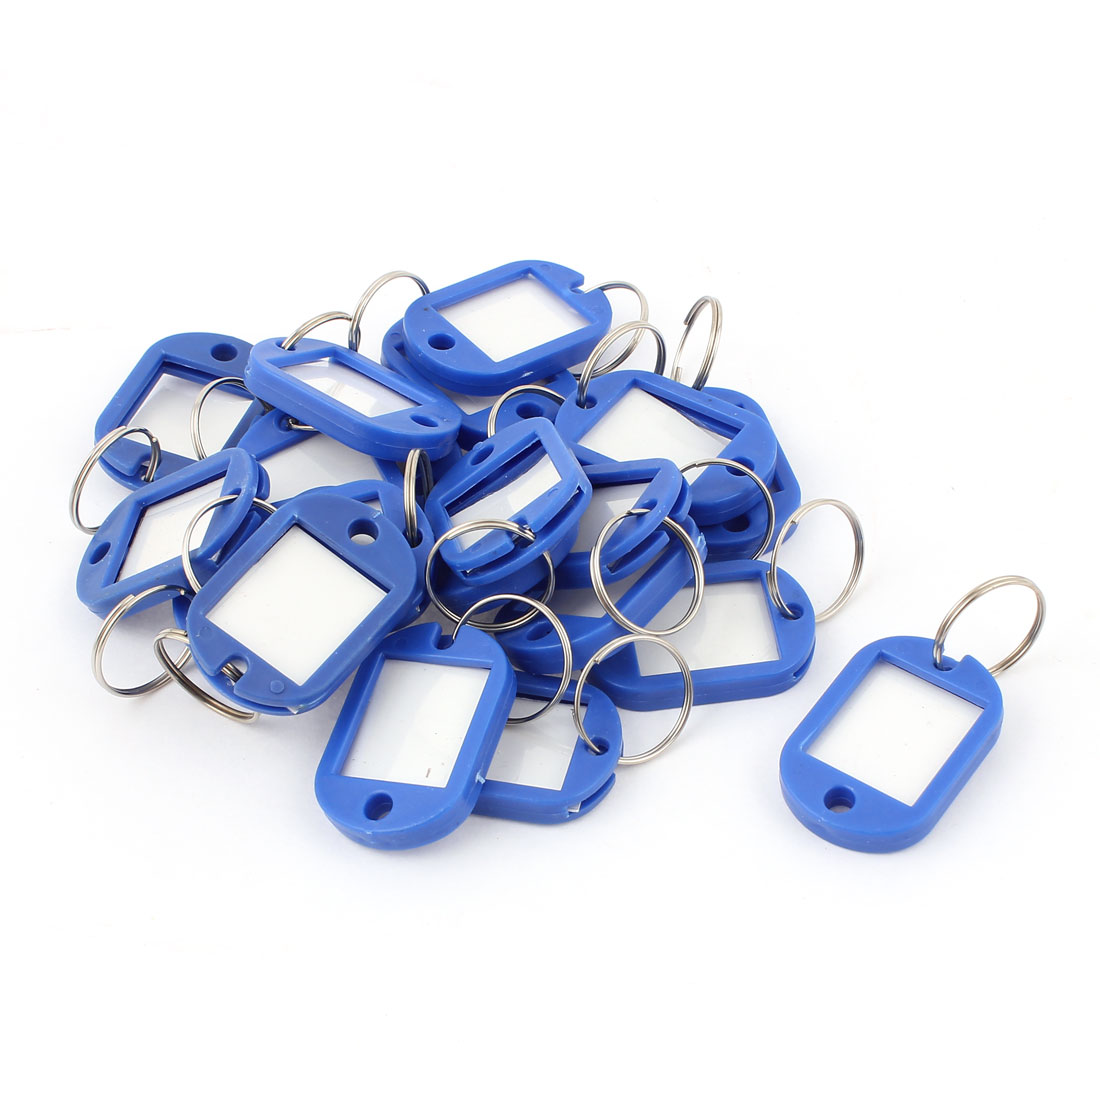 20pcs Blue Plastic Key Fobs ID Label Luggage Tags Name Card w Keyring Split Ring